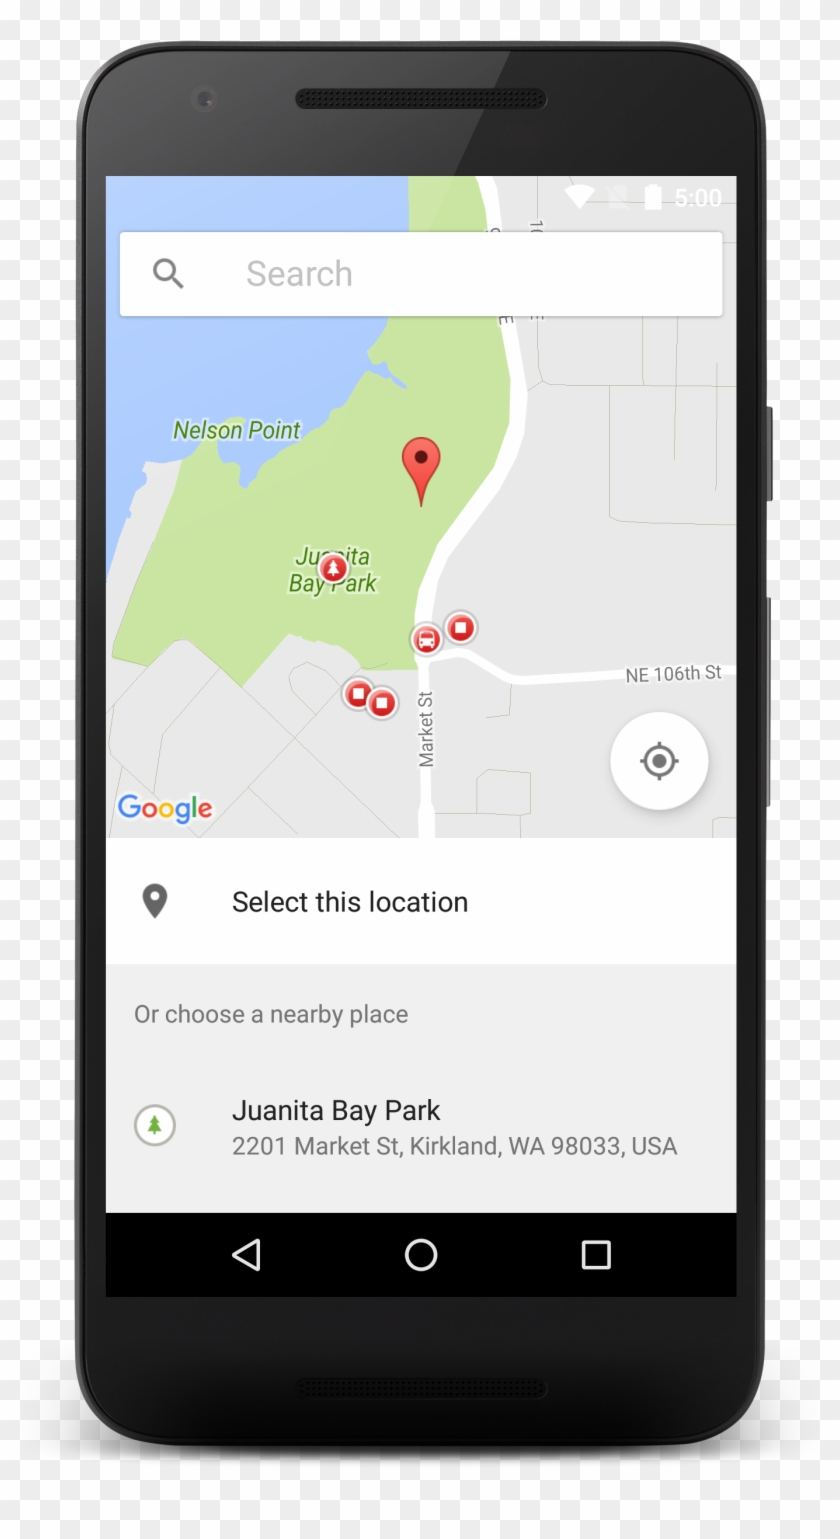 Android Image Picker the place picker ui widget - android location picker clipart